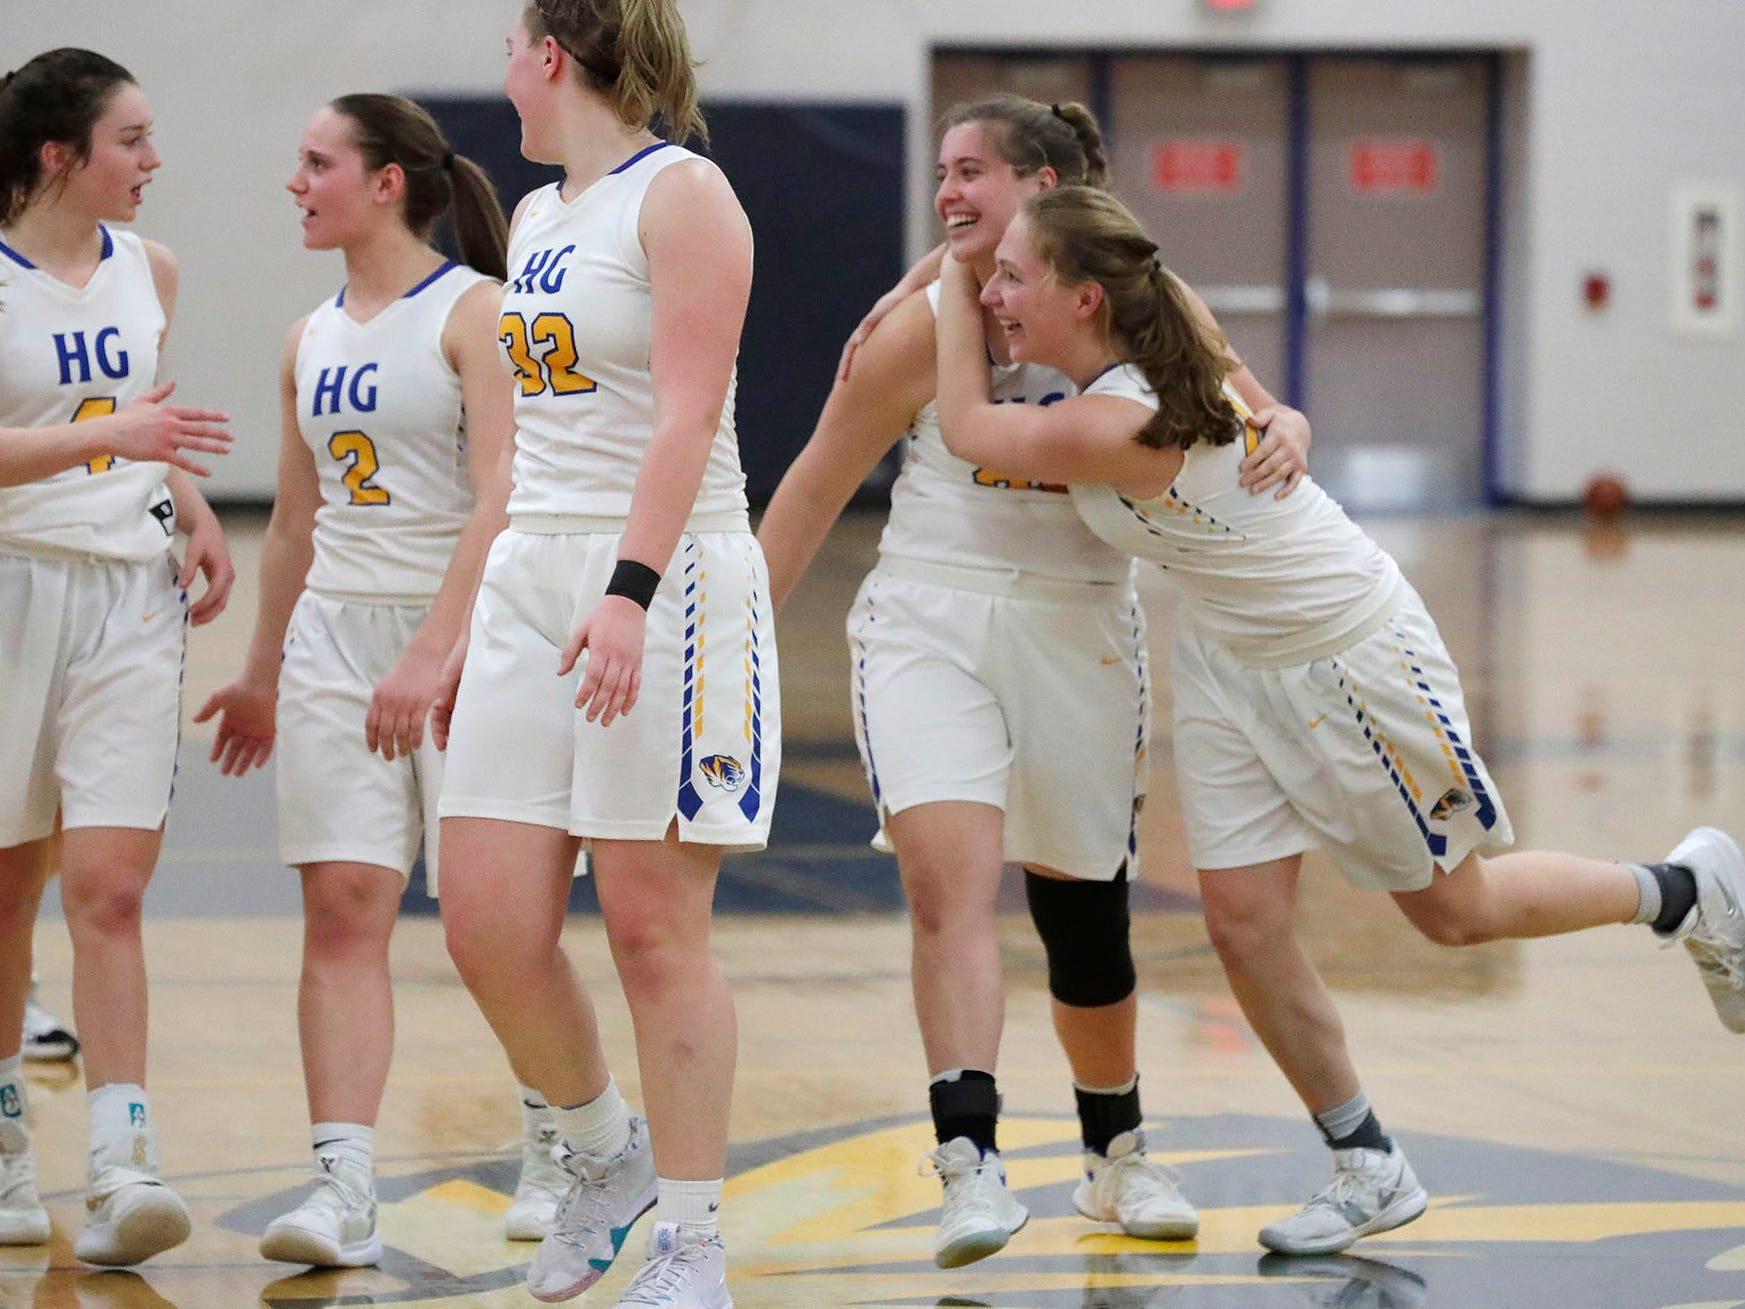 Howards Girls react to their victory over Oostburg to win the WIAA Division 4 regional final, Saturday, February 23, 2019, at Howards Grove, Wis.